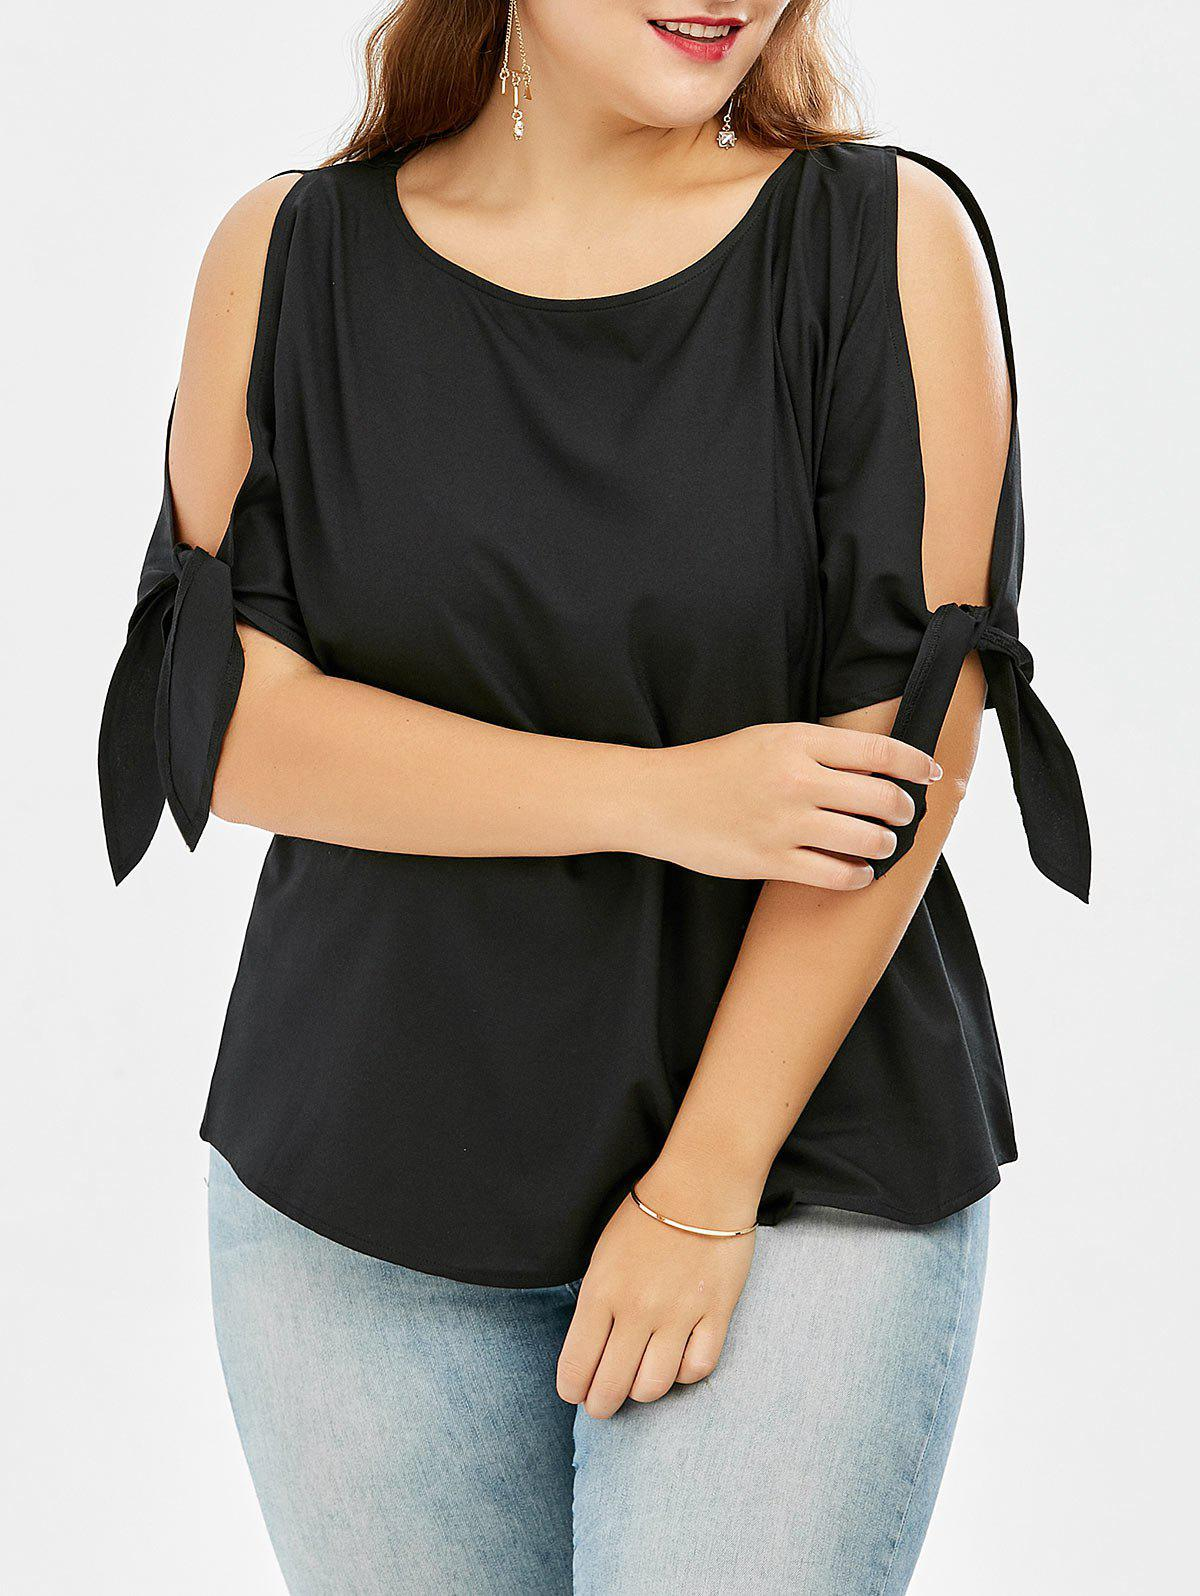 Bowtie Cold Shoulder Chiffon Plus Size TopWOMEN<br><br>Size: XL; Color: BLACK; Material: Cotton Blends,Polyester; Fabric Type: Chiffon; Shirt Length: Regular; Sleeve Length: Three Quarter; Collar: Scoop Neck; Style: Fashion; Season: Spring,Summer; Embellishment: Bowknot; Pattern Type: Solid; Weight: 0.1700kg; Package Contents: 1 x Blouse;